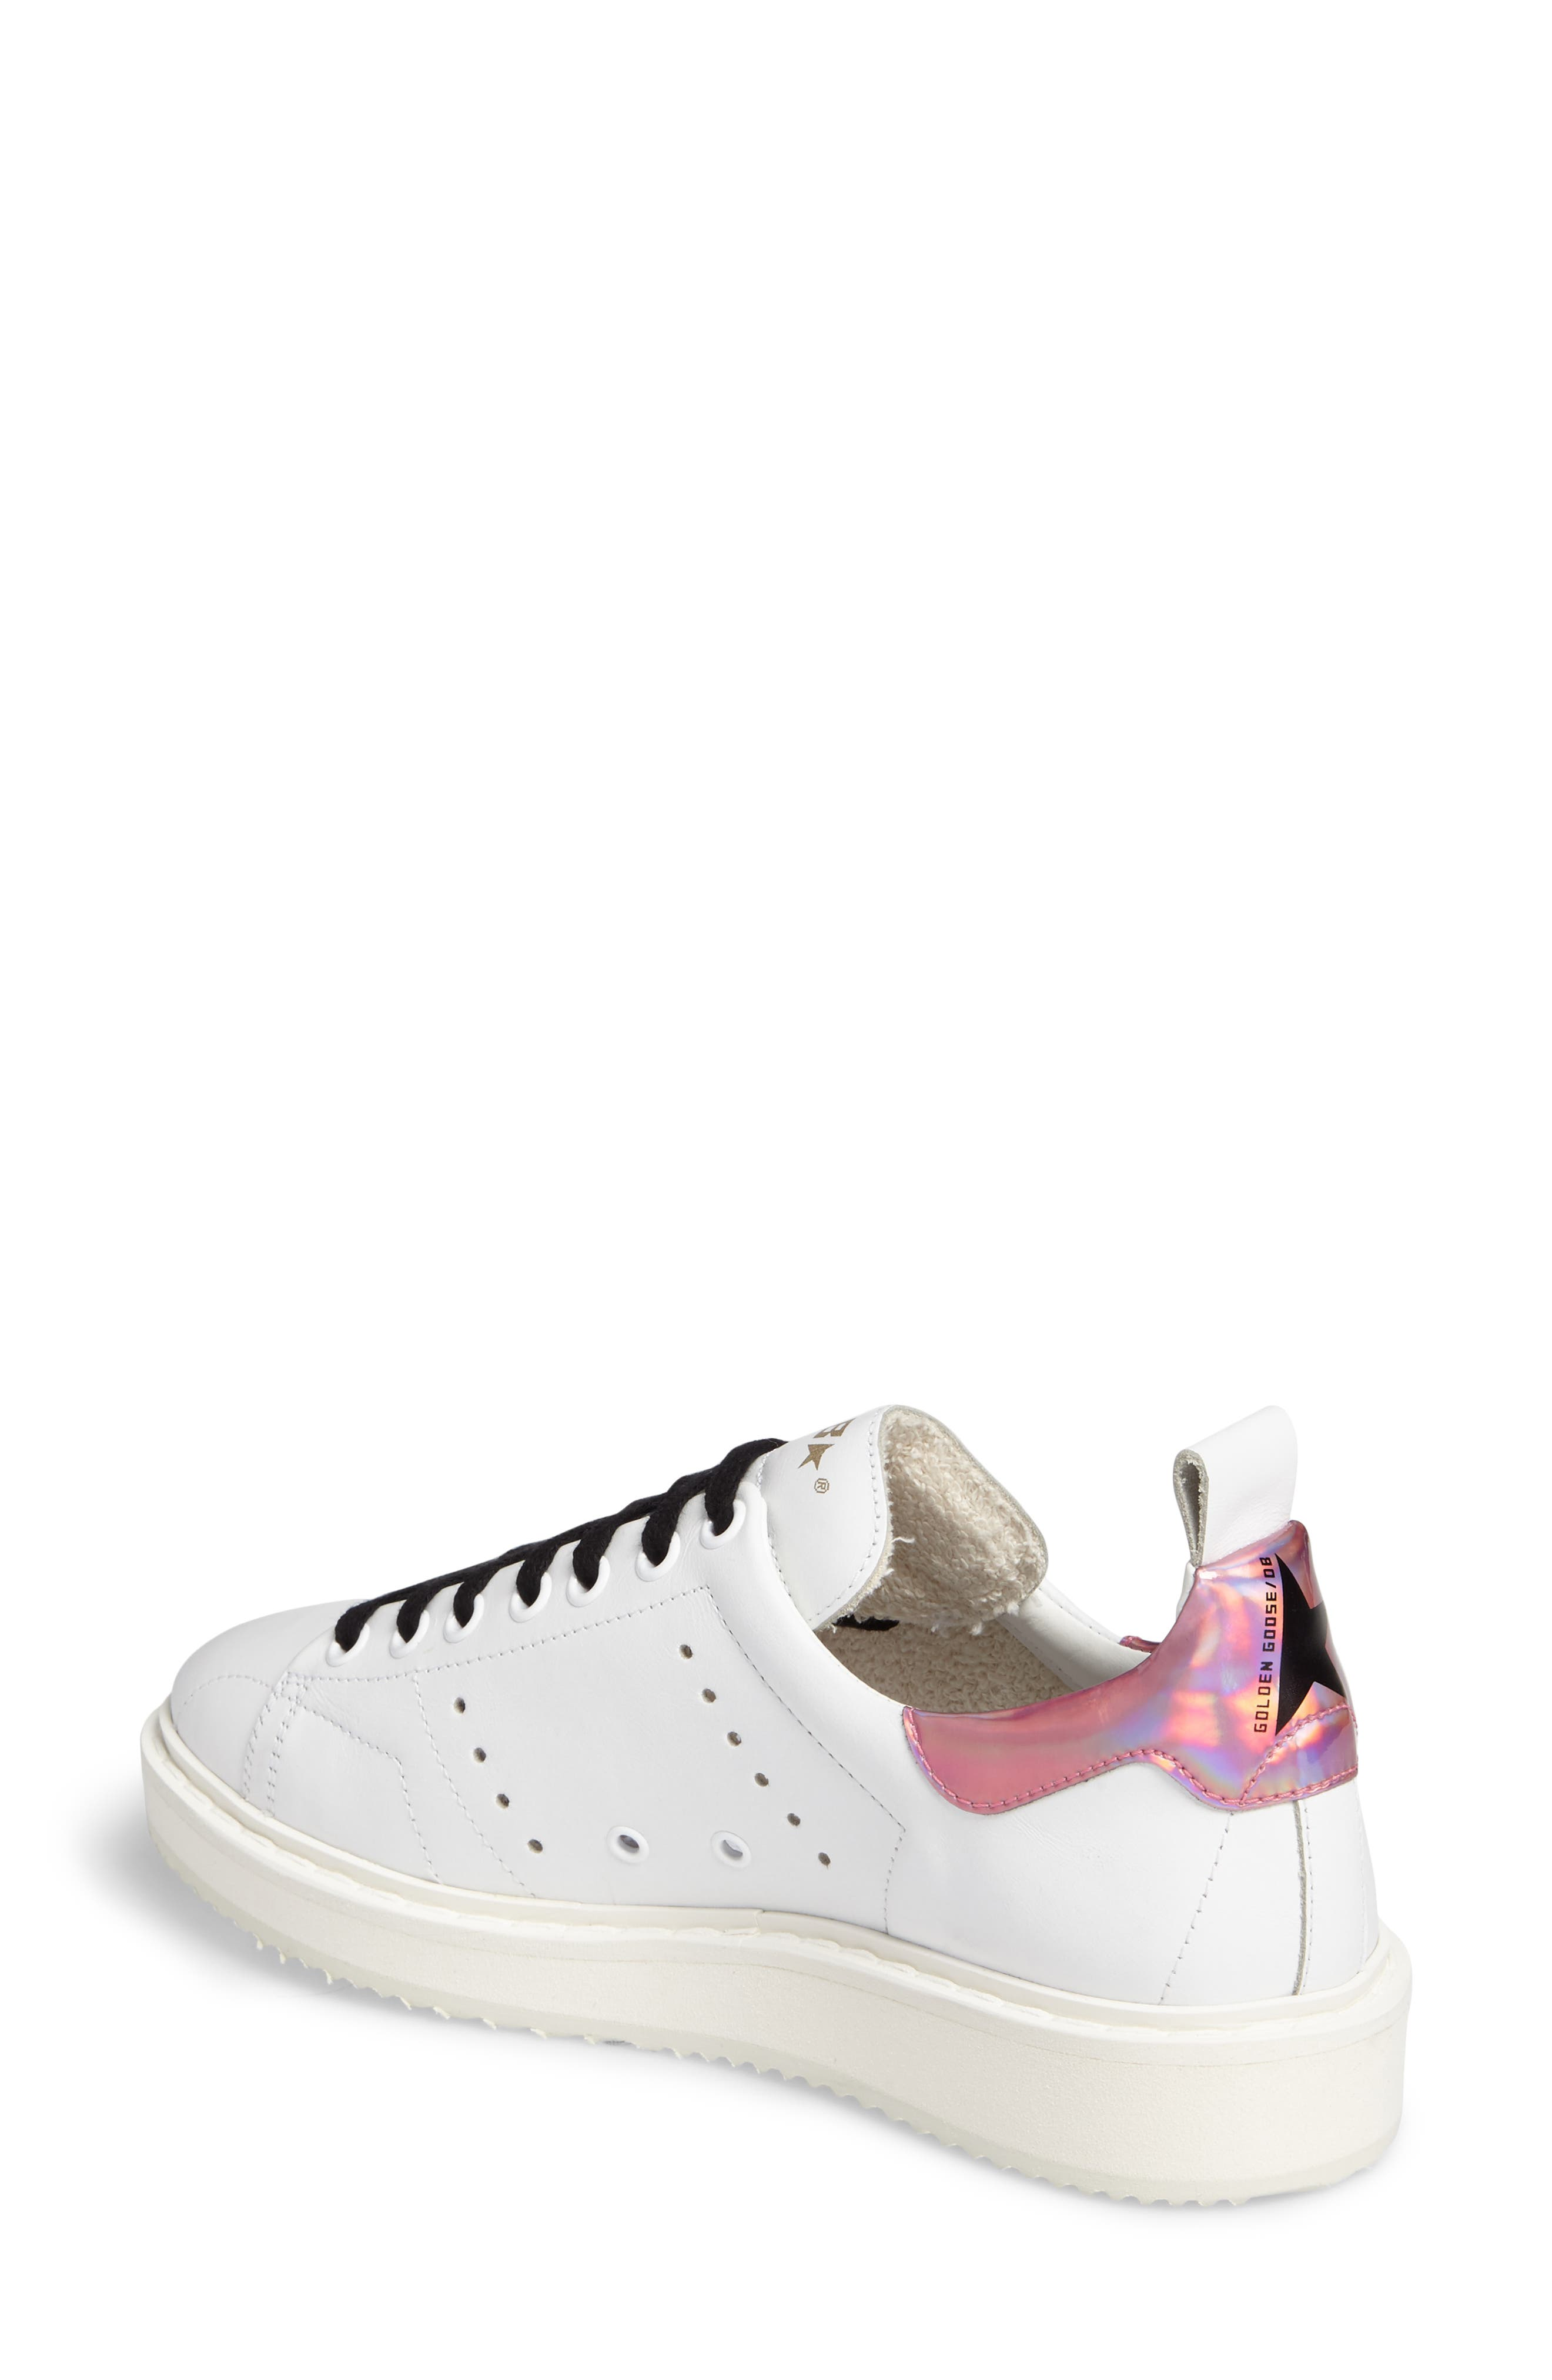 Starter Low Top Sneaker,                             Alternate thumbnail 2, color,                             White/ Pink Jelly